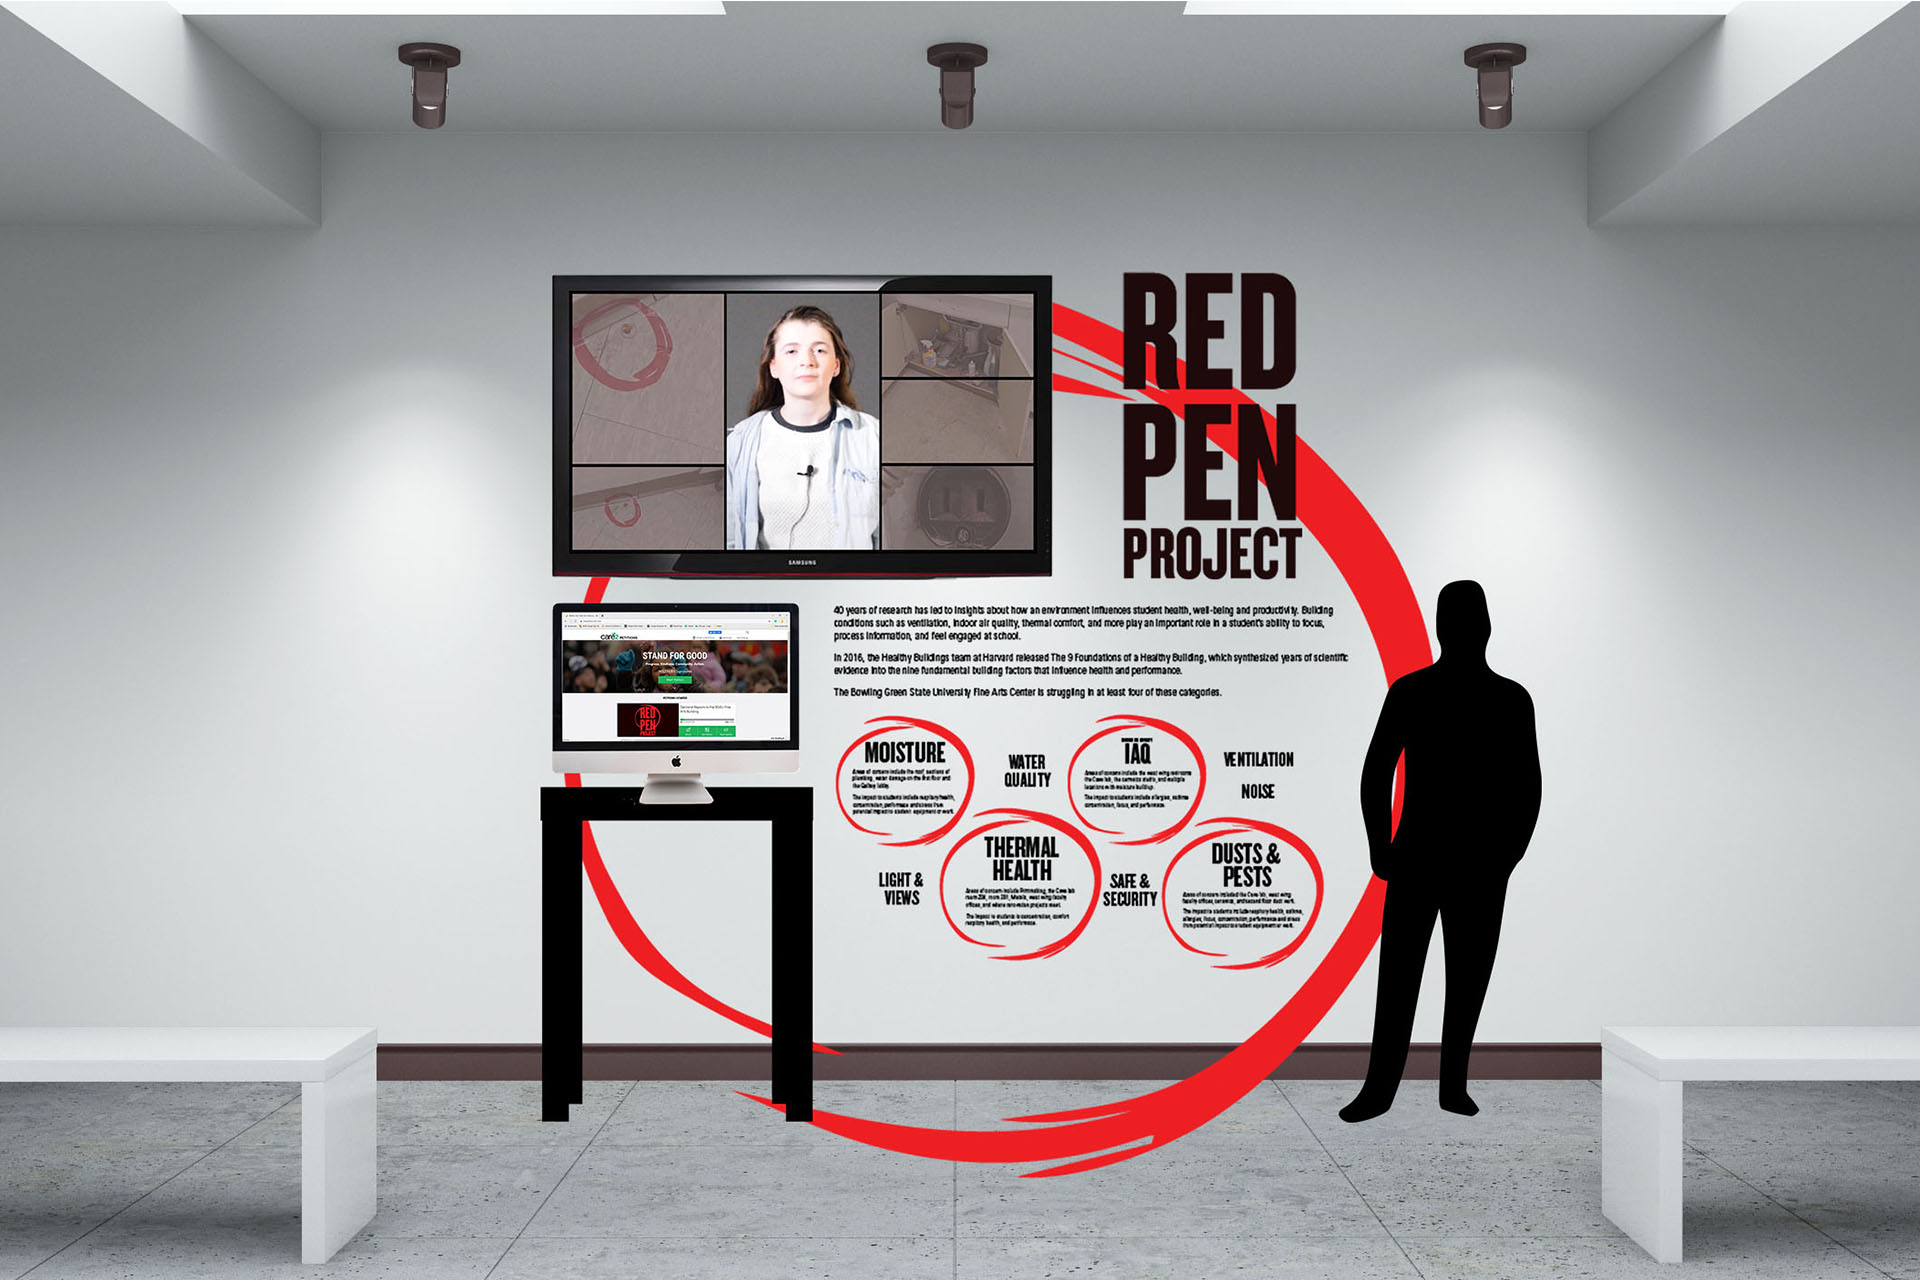 Red Pen Project